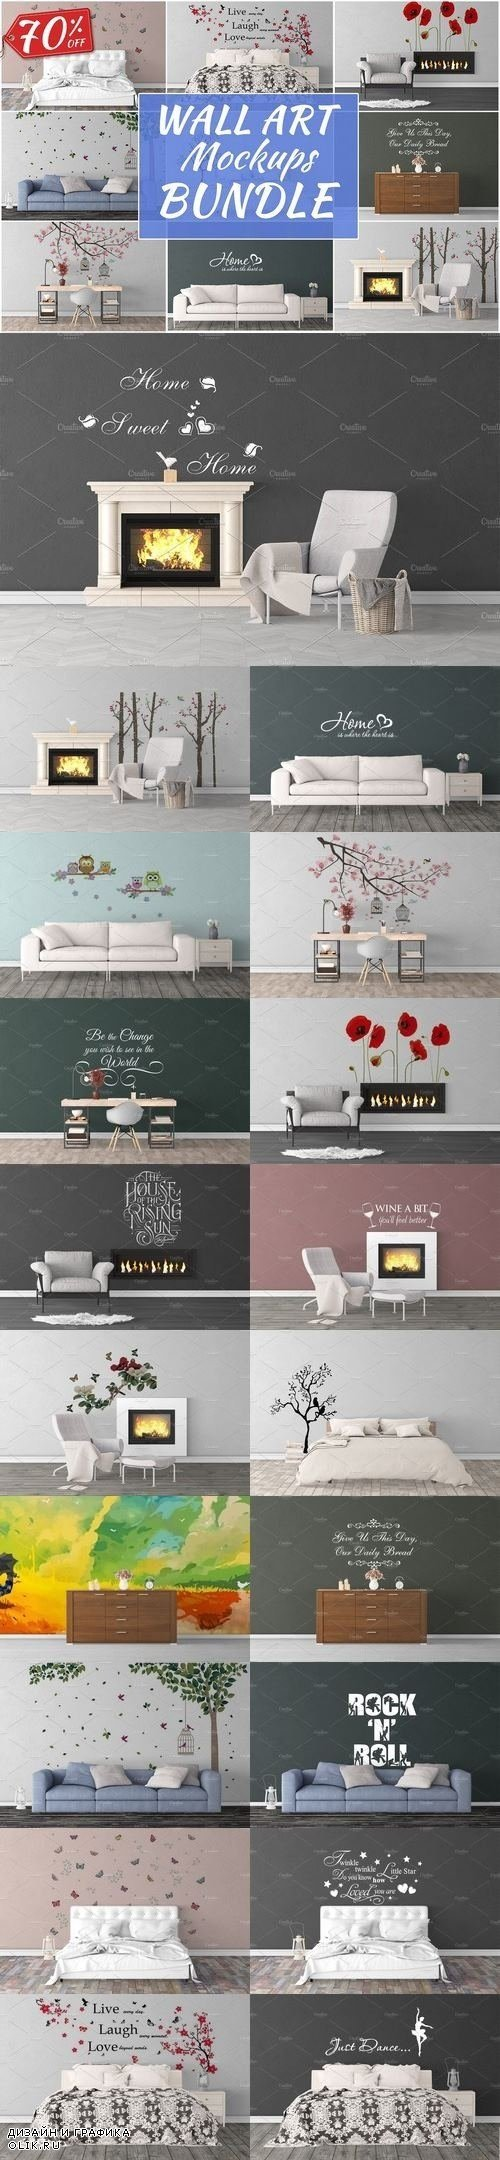 Wall Art Mockups BUNDLE V32 1183324